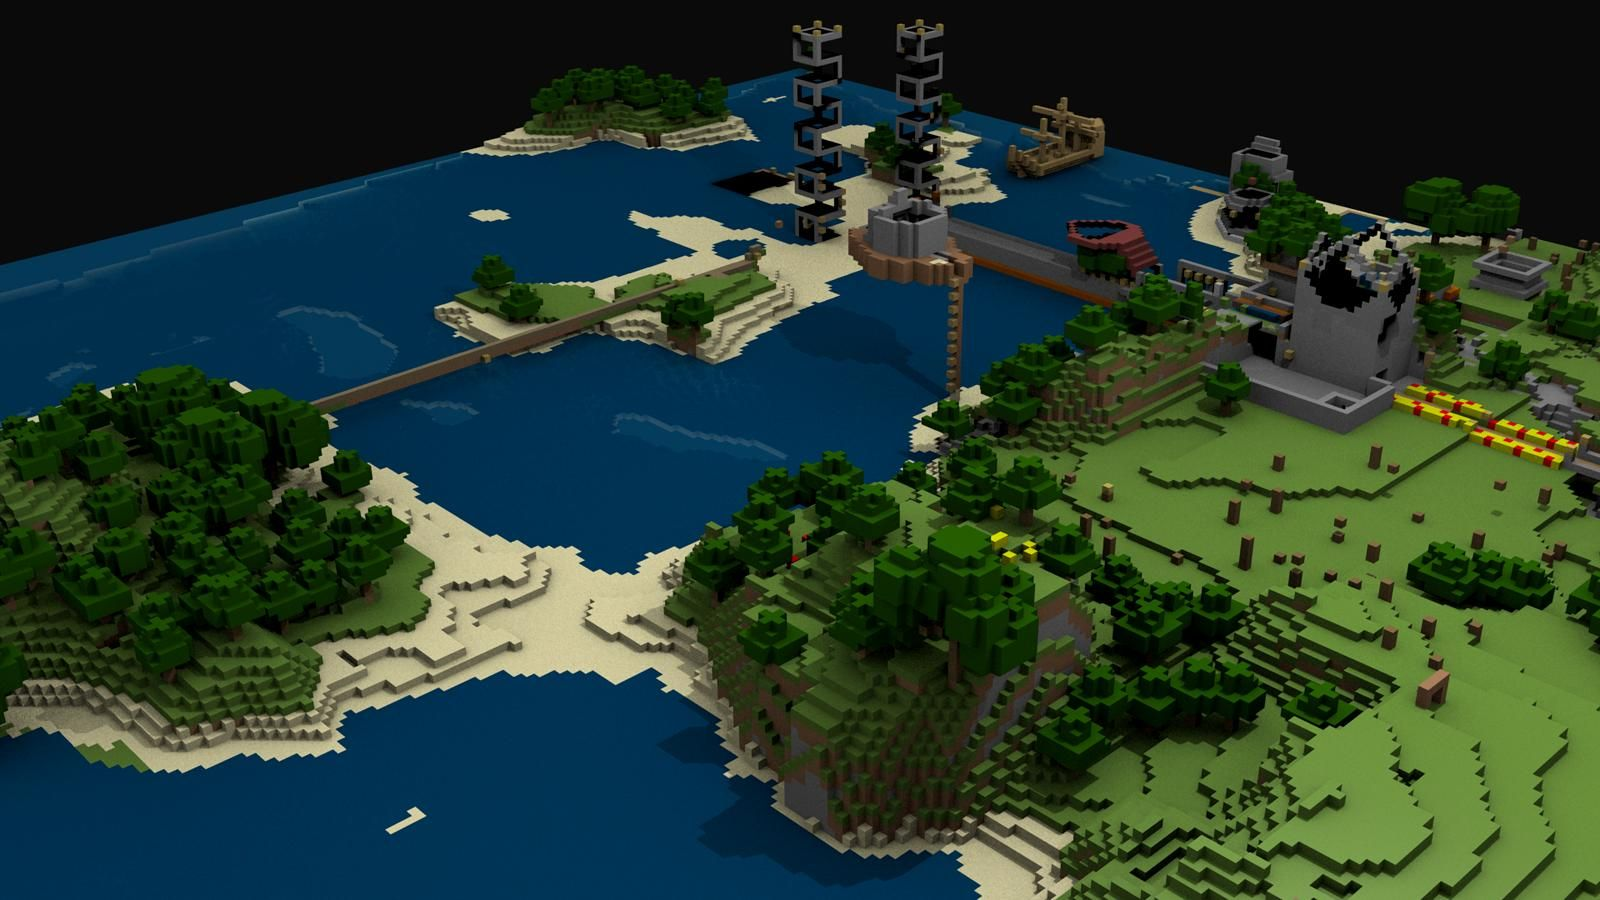 Minecraft Hd Wallpapers And